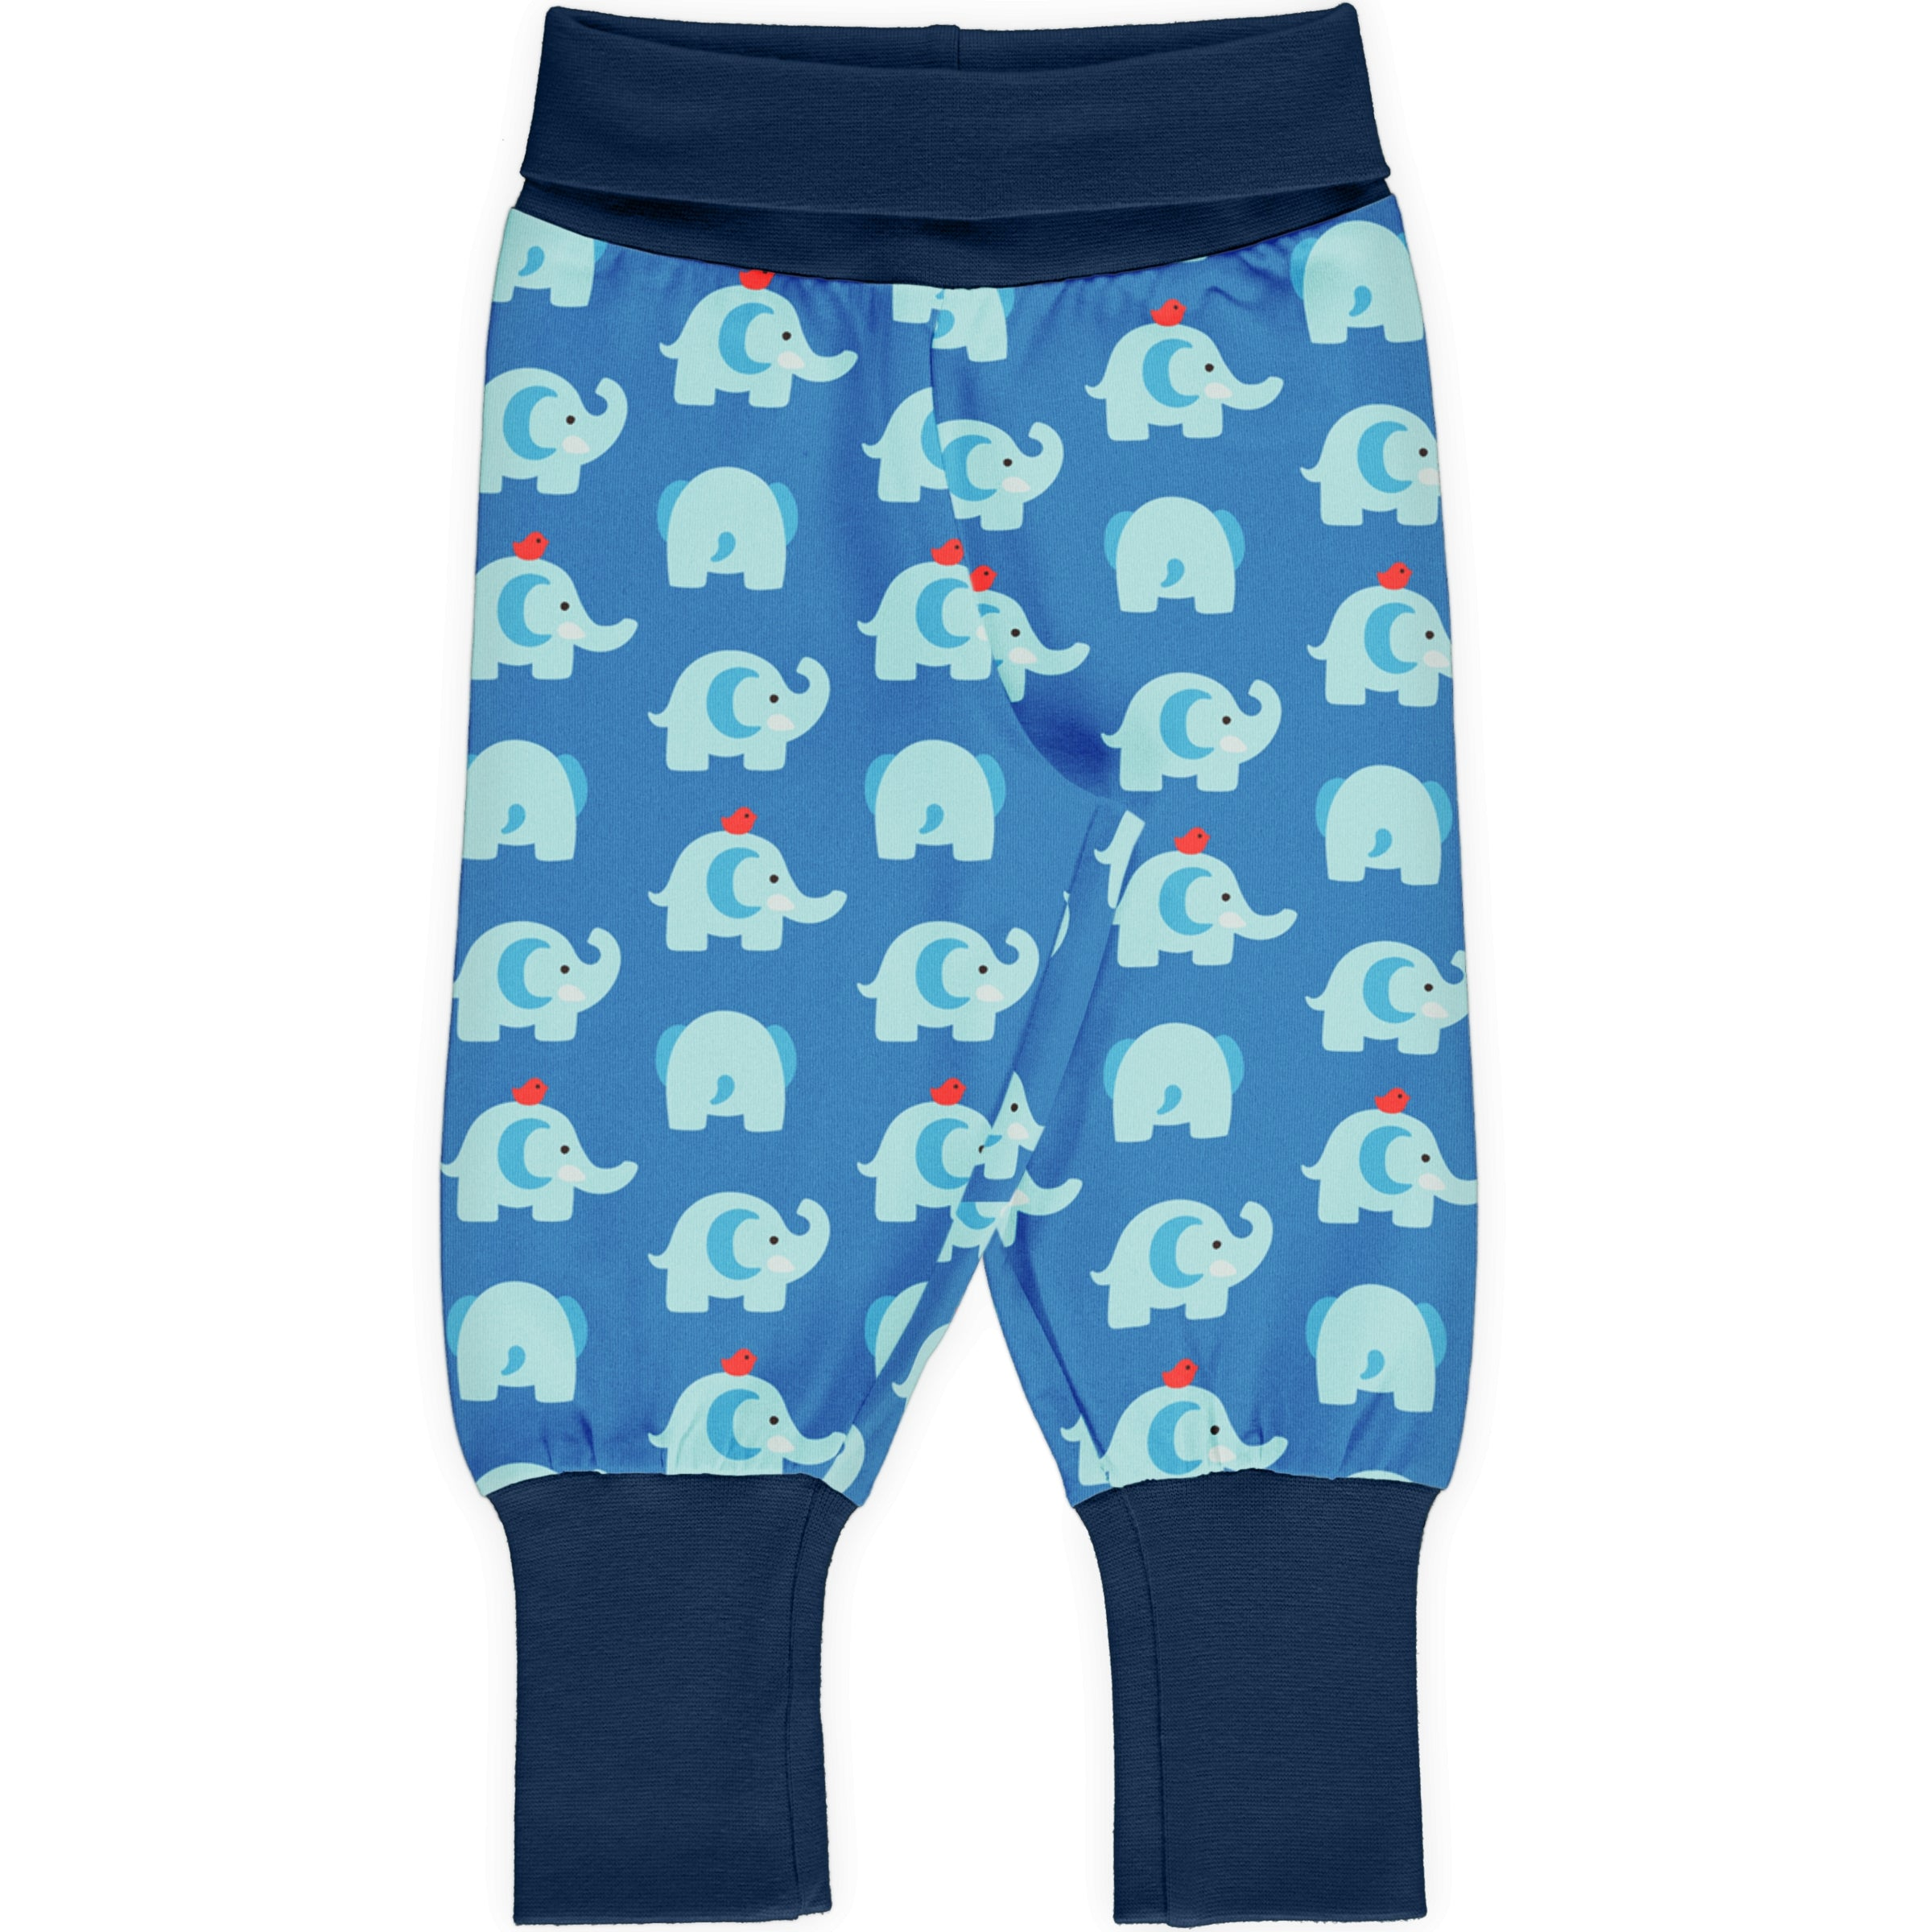 Maxomorra Pants Rib Elephant Friends,little-tiger-togs.